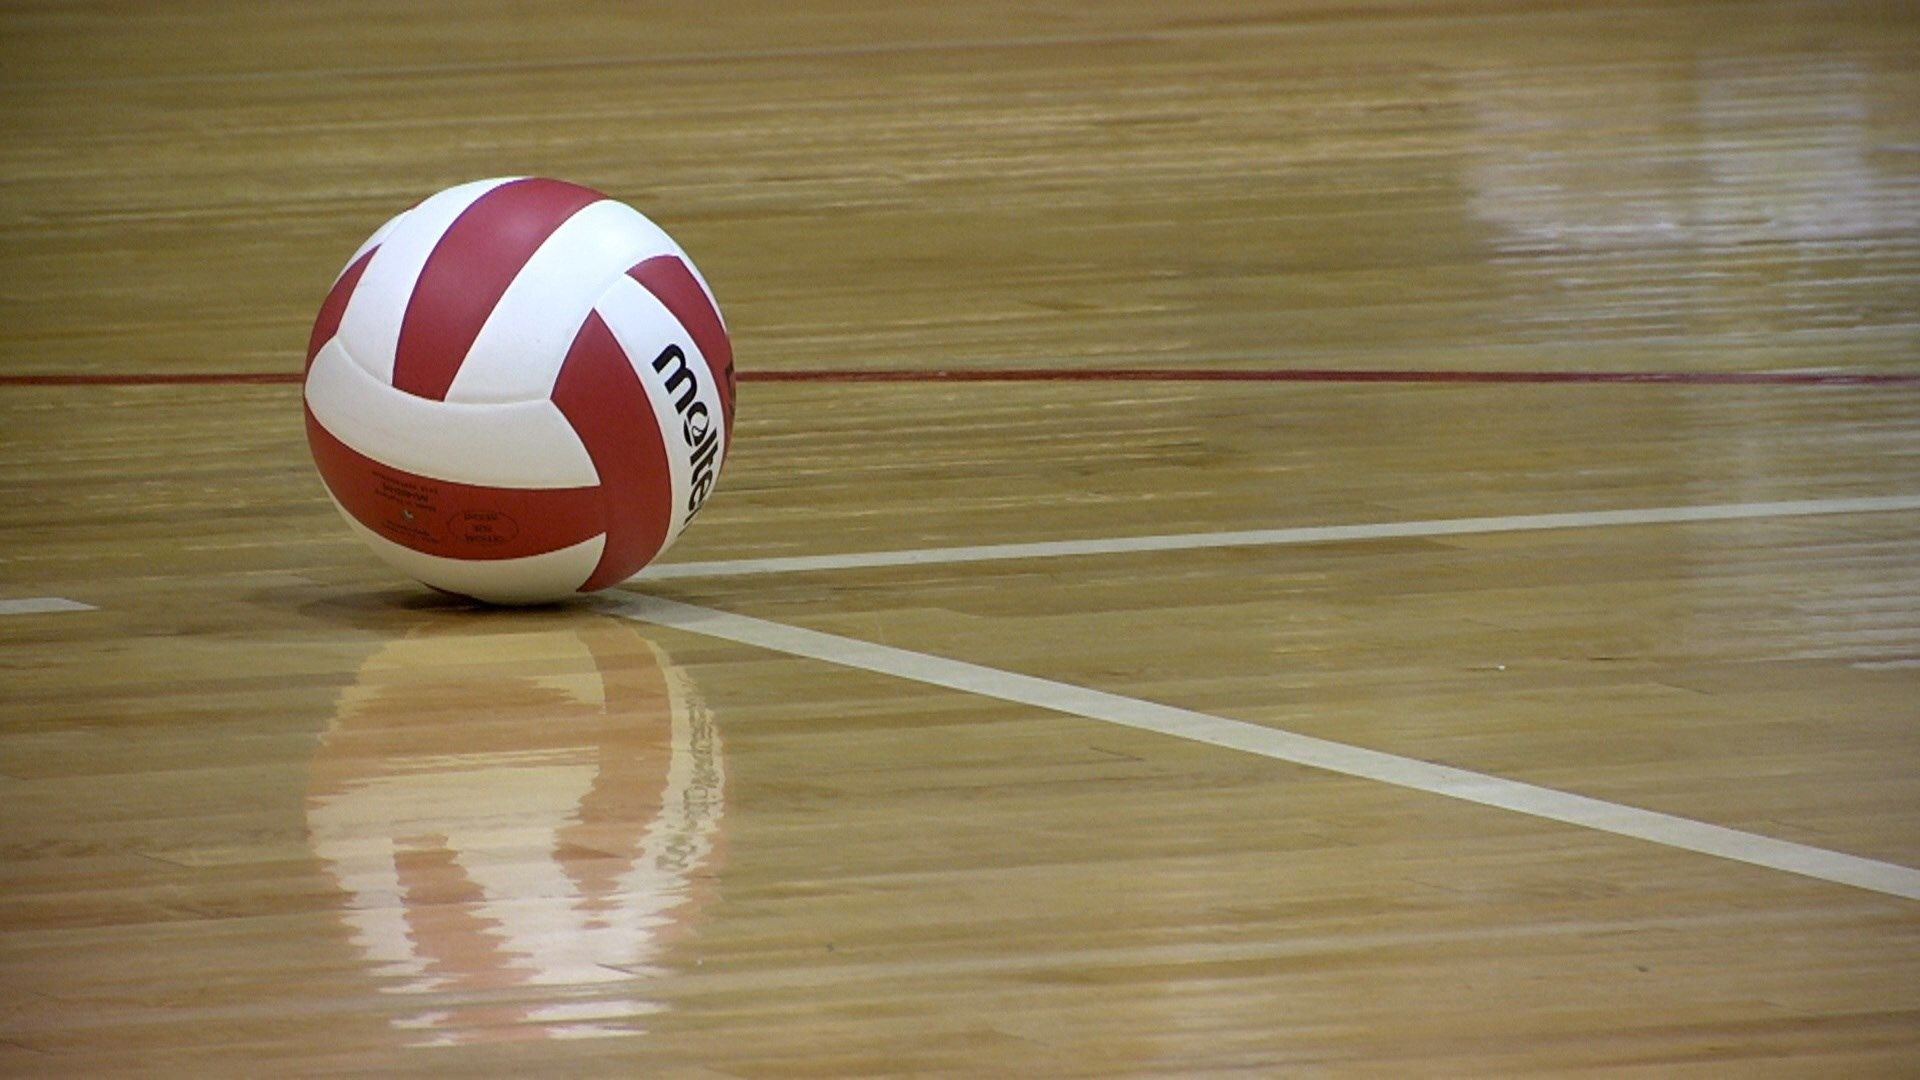 Volleyball Background Images Volleyball Wallpaper Volleyball Backgrounds Volleyball